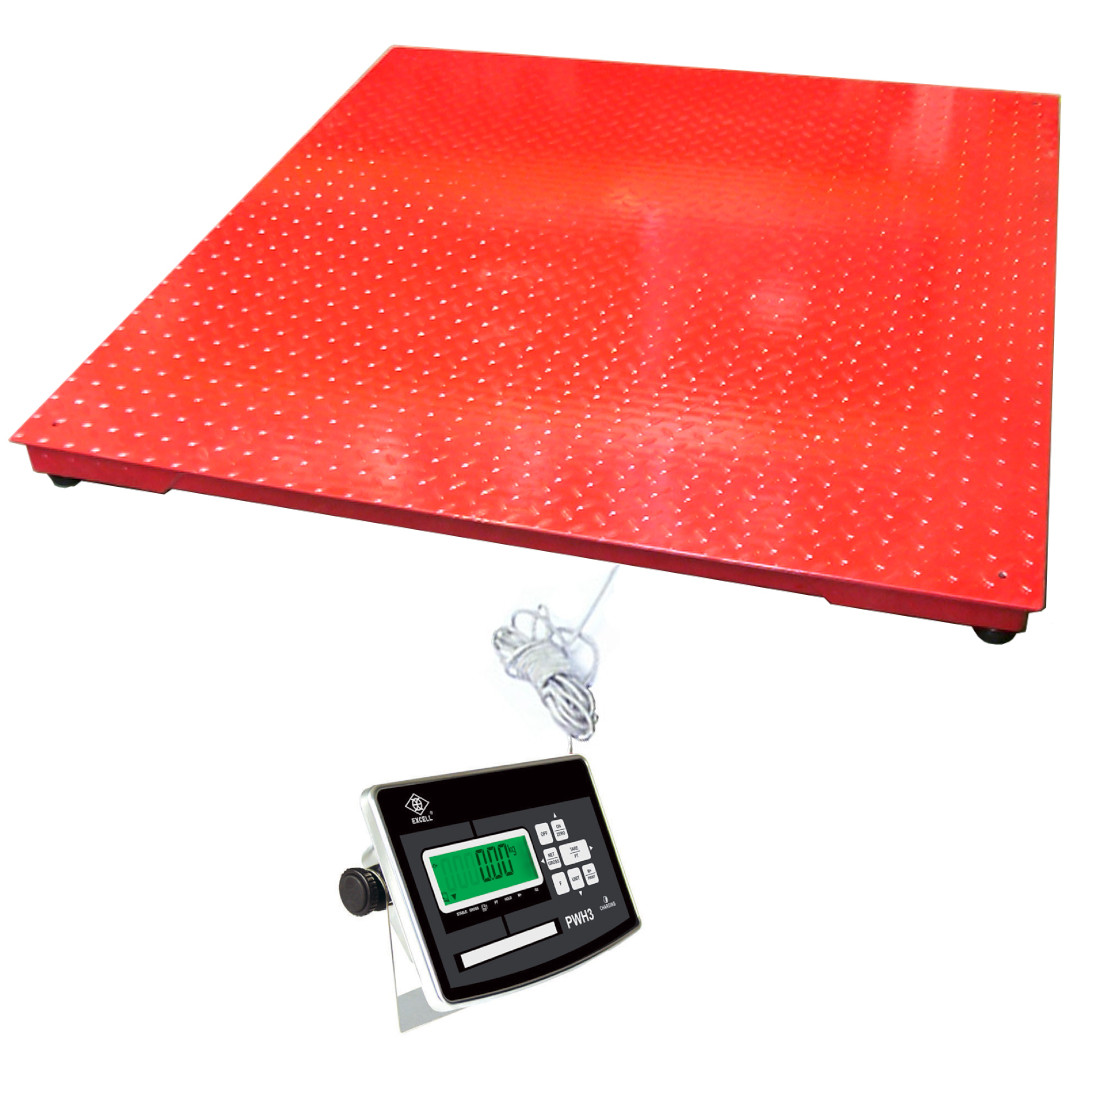 EXCELL PW Series PLATFORM SCALE | weighingscales.com